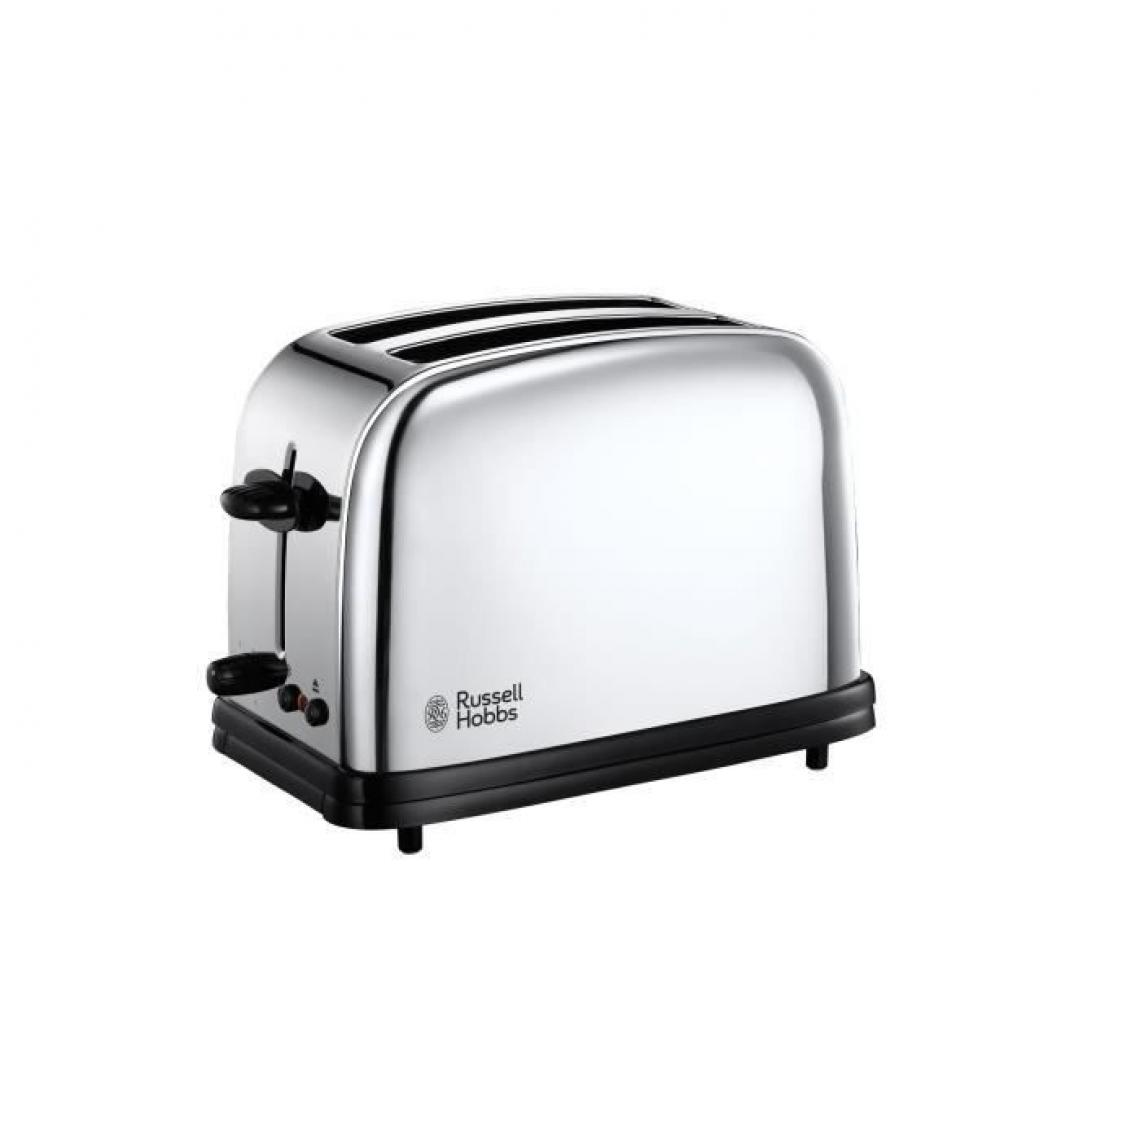 Russell Hobbs RUSSELL HOBBS 23310-57 - Toaster Victory Retro 2 fentes - Pinces a sandwichs - 1200 W - Acier brillant